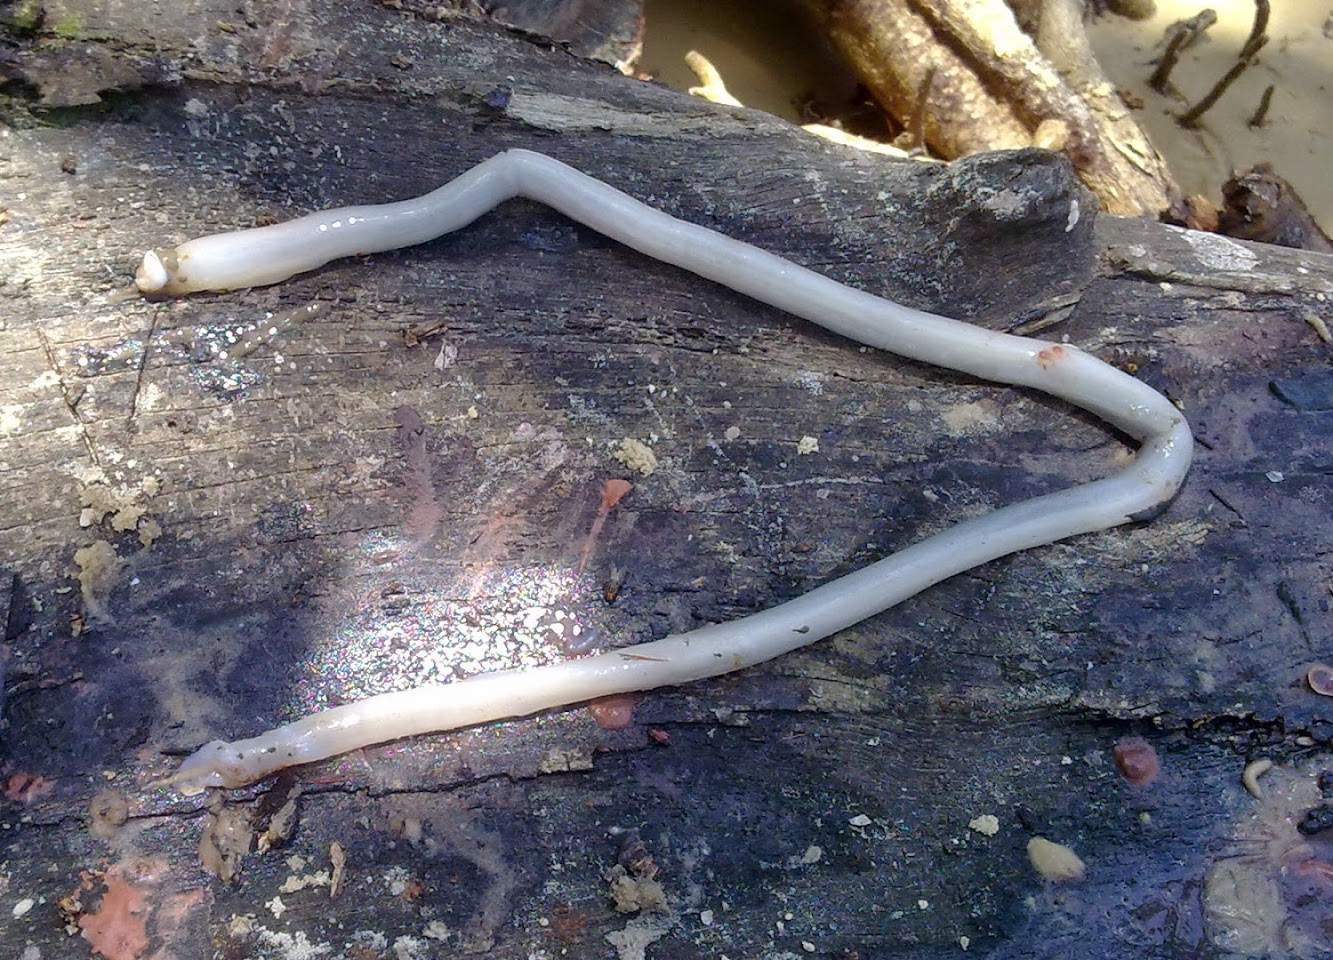 Northern Europe: Shipworms threaten Danish underwater sites